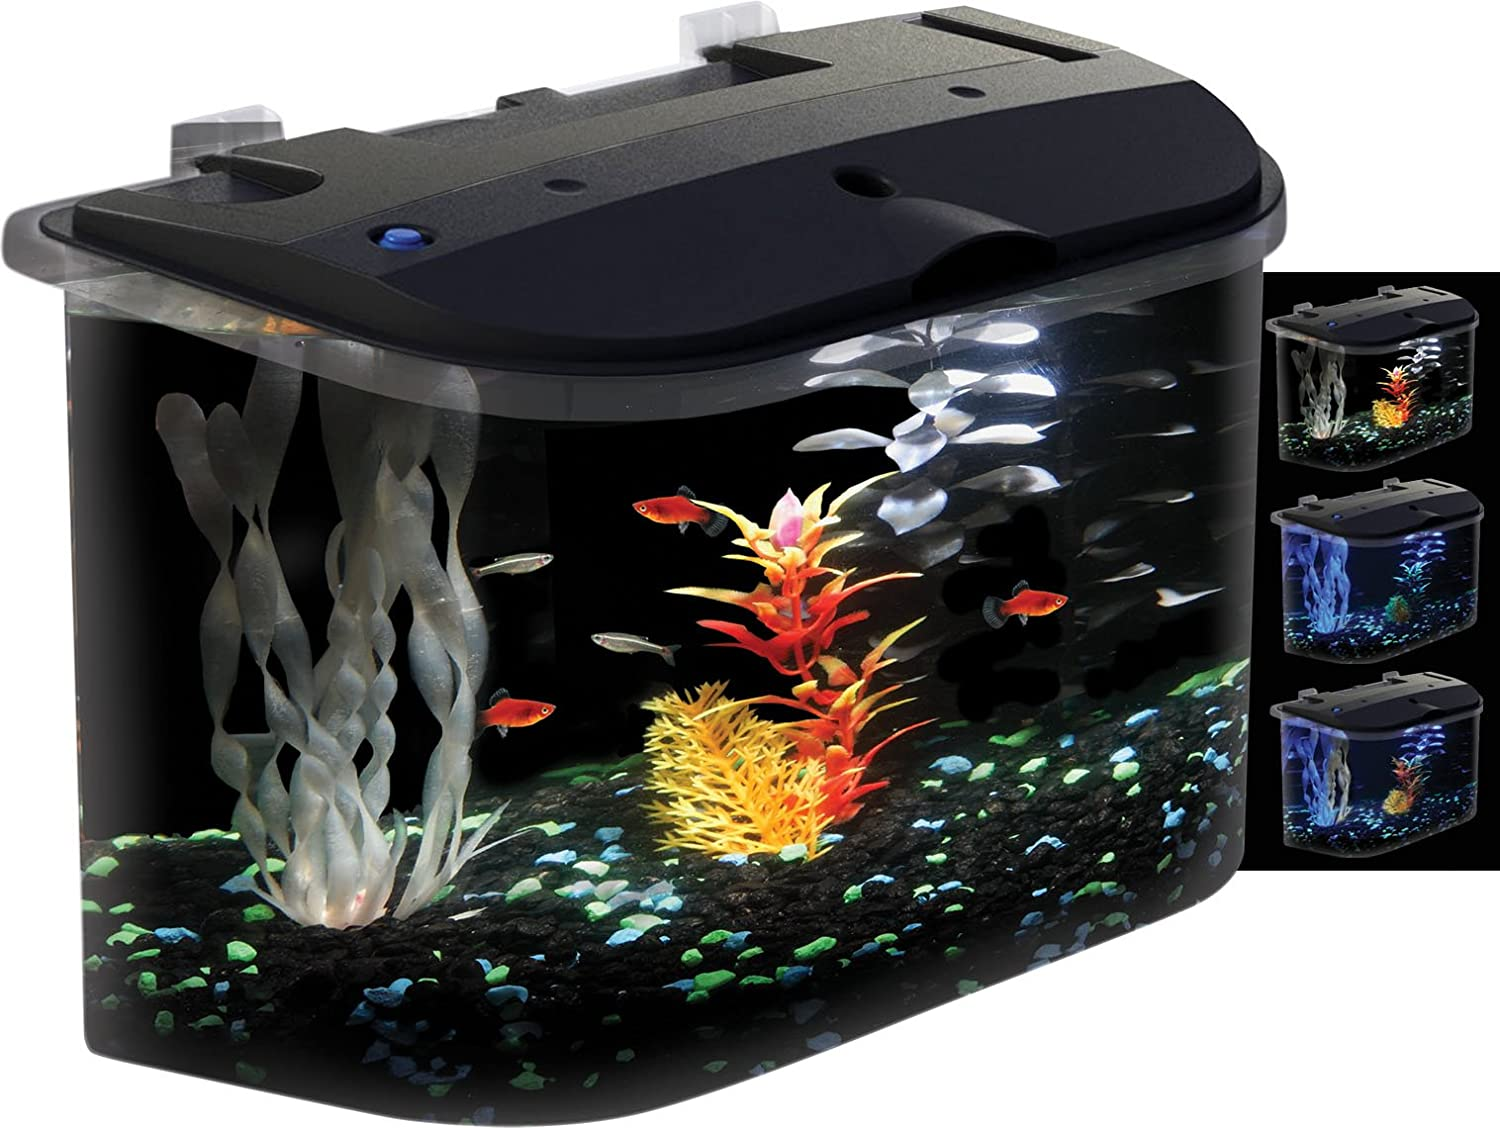 Fish for aquarium online - Buy Aquarius Aq15005 Aquarius 5 Rounded 5 Gallon Aquarium Kit Online At Low Prices In India Amazon In